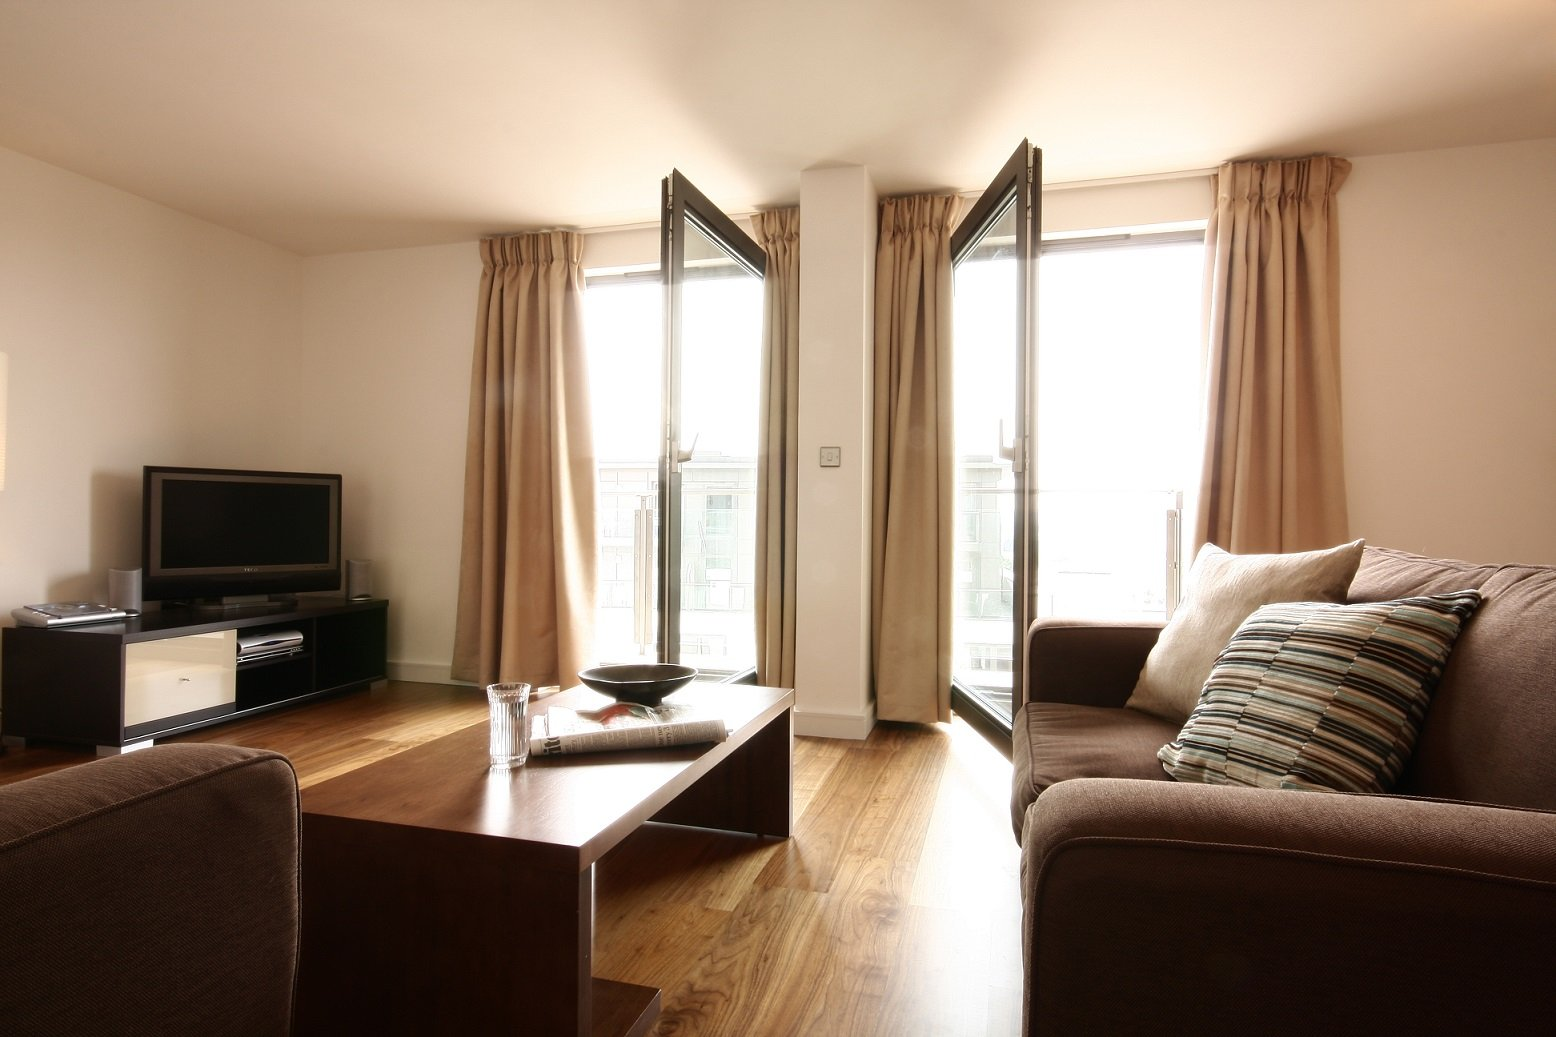 Modern-Serviced-Apartments,-Berkshire,-UK!-HD-TV-with-full-Sky-package,-On-site-Parking-and-Weekly-Housekeeping!-BOOK-NOW-on-+44-208-691-3920-|-Urban-Stay